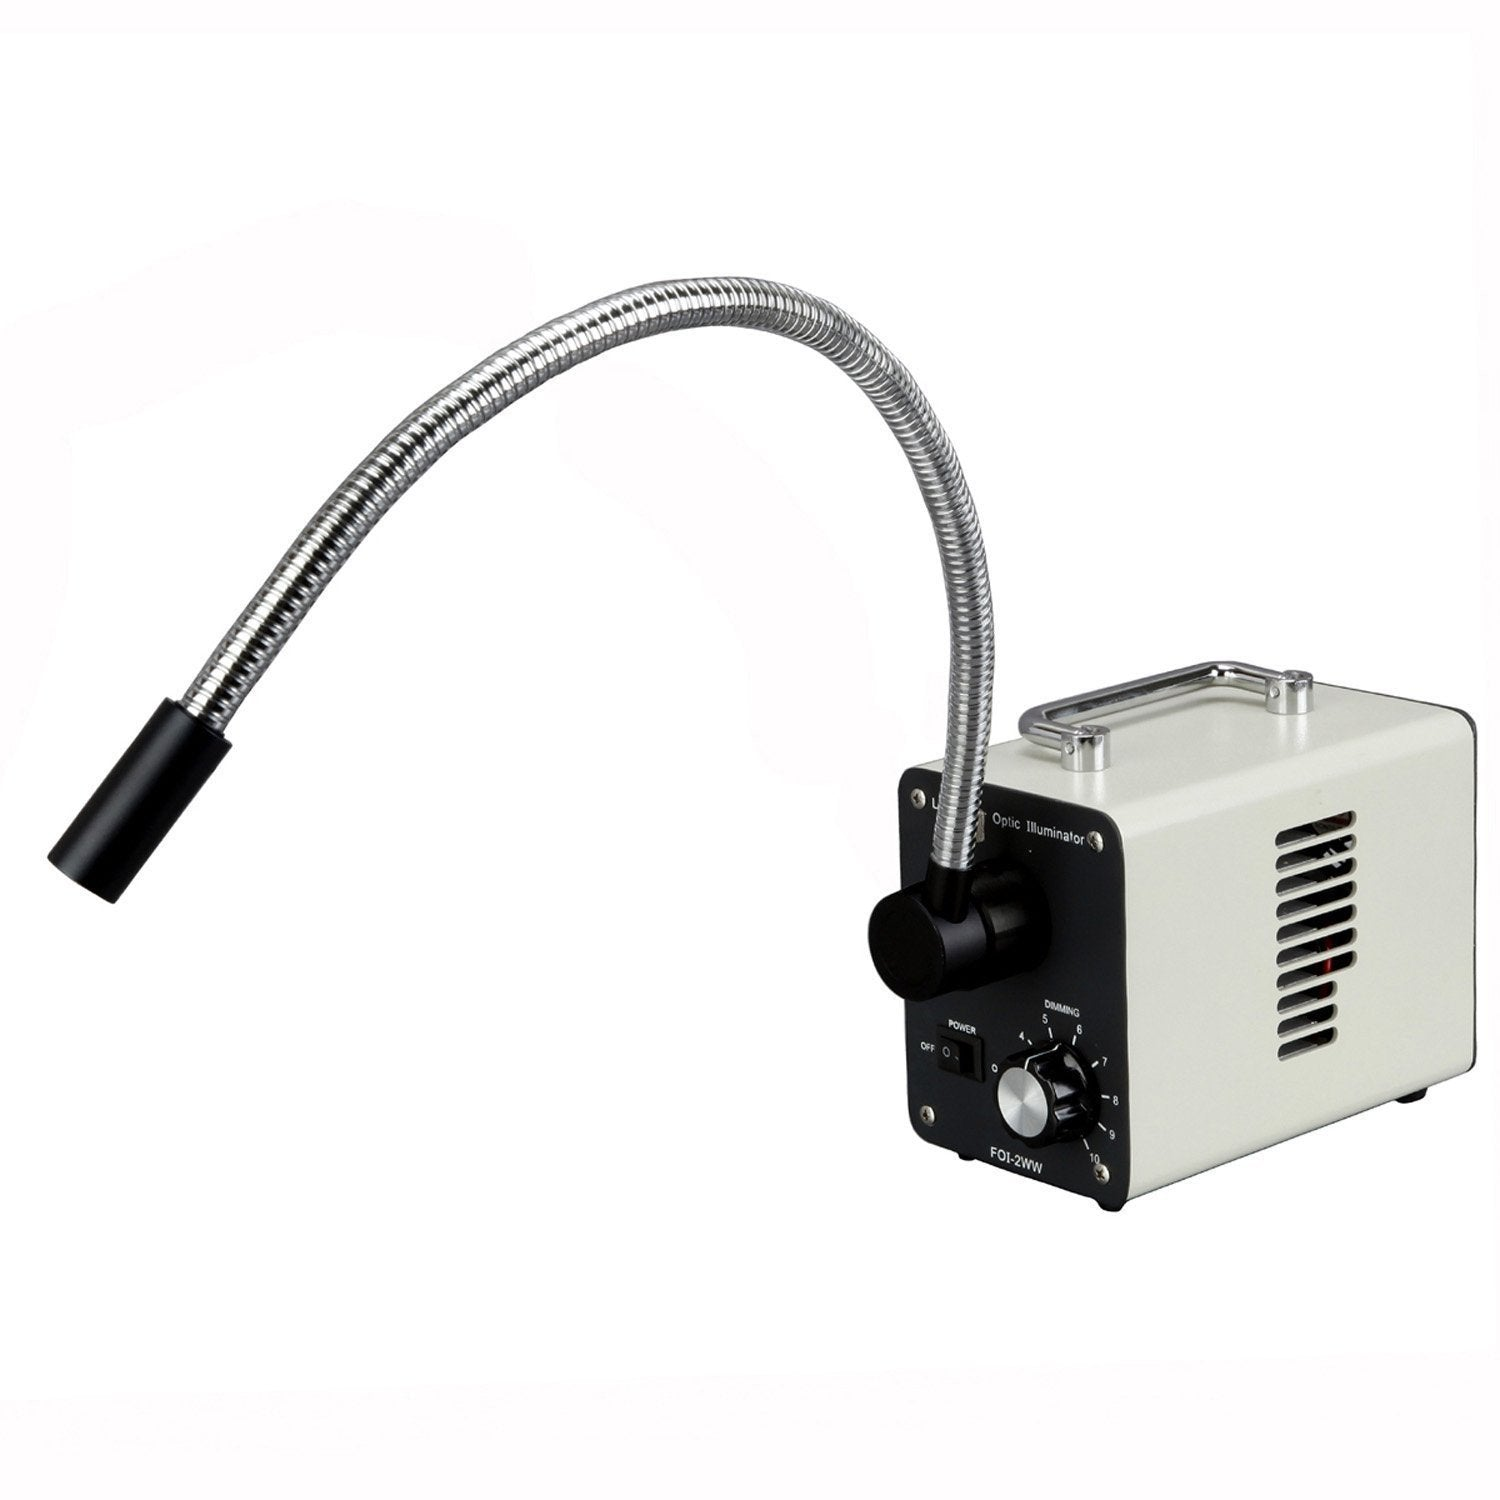 20W LED Fiber Optic Single Gooseneck Light Microscope Illuminator